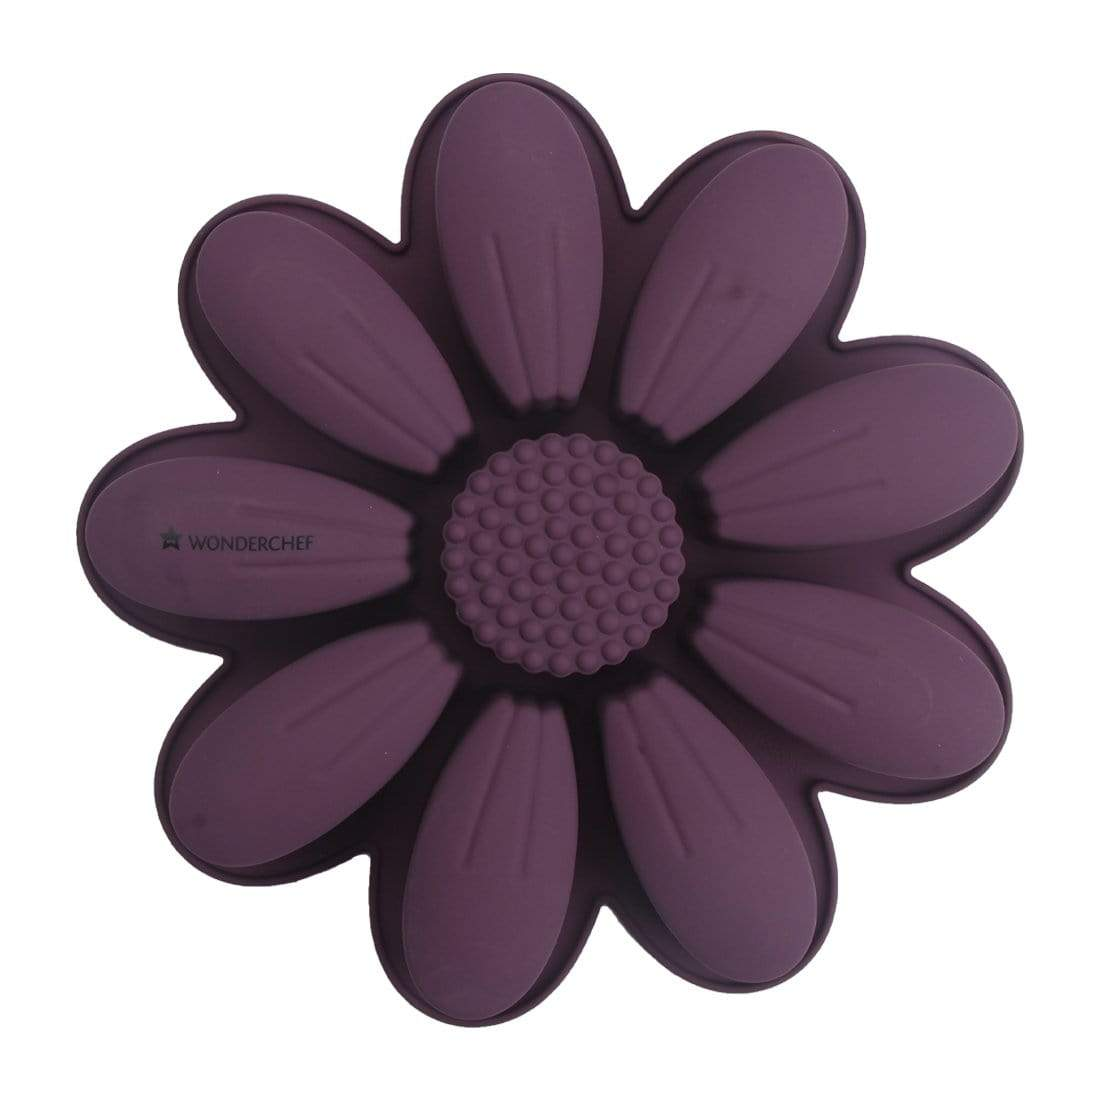 Wonderchef Silicone Daisy Mould